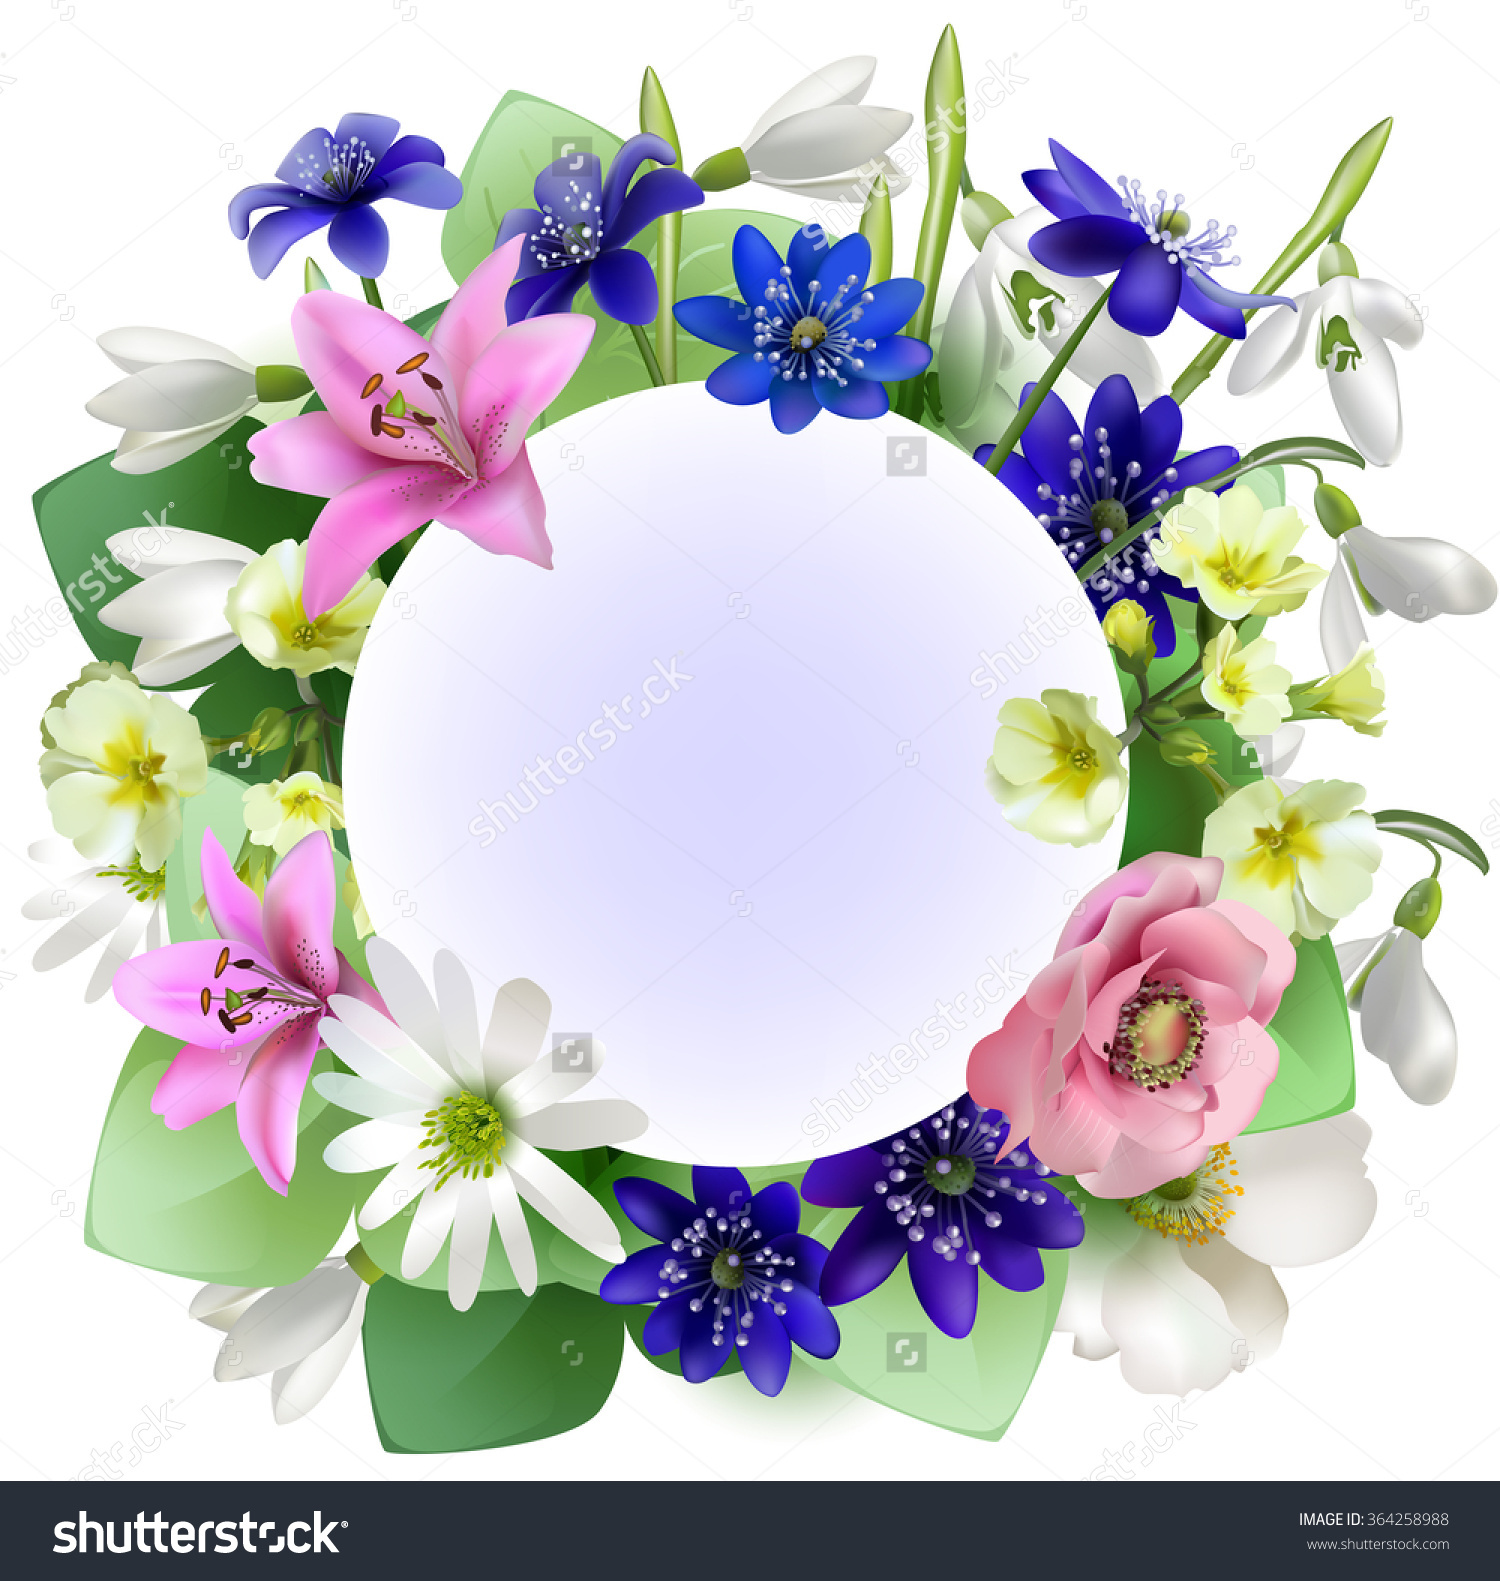 Bouquet Snowdropsanemones Spring Forest Flowers Vector Stock.